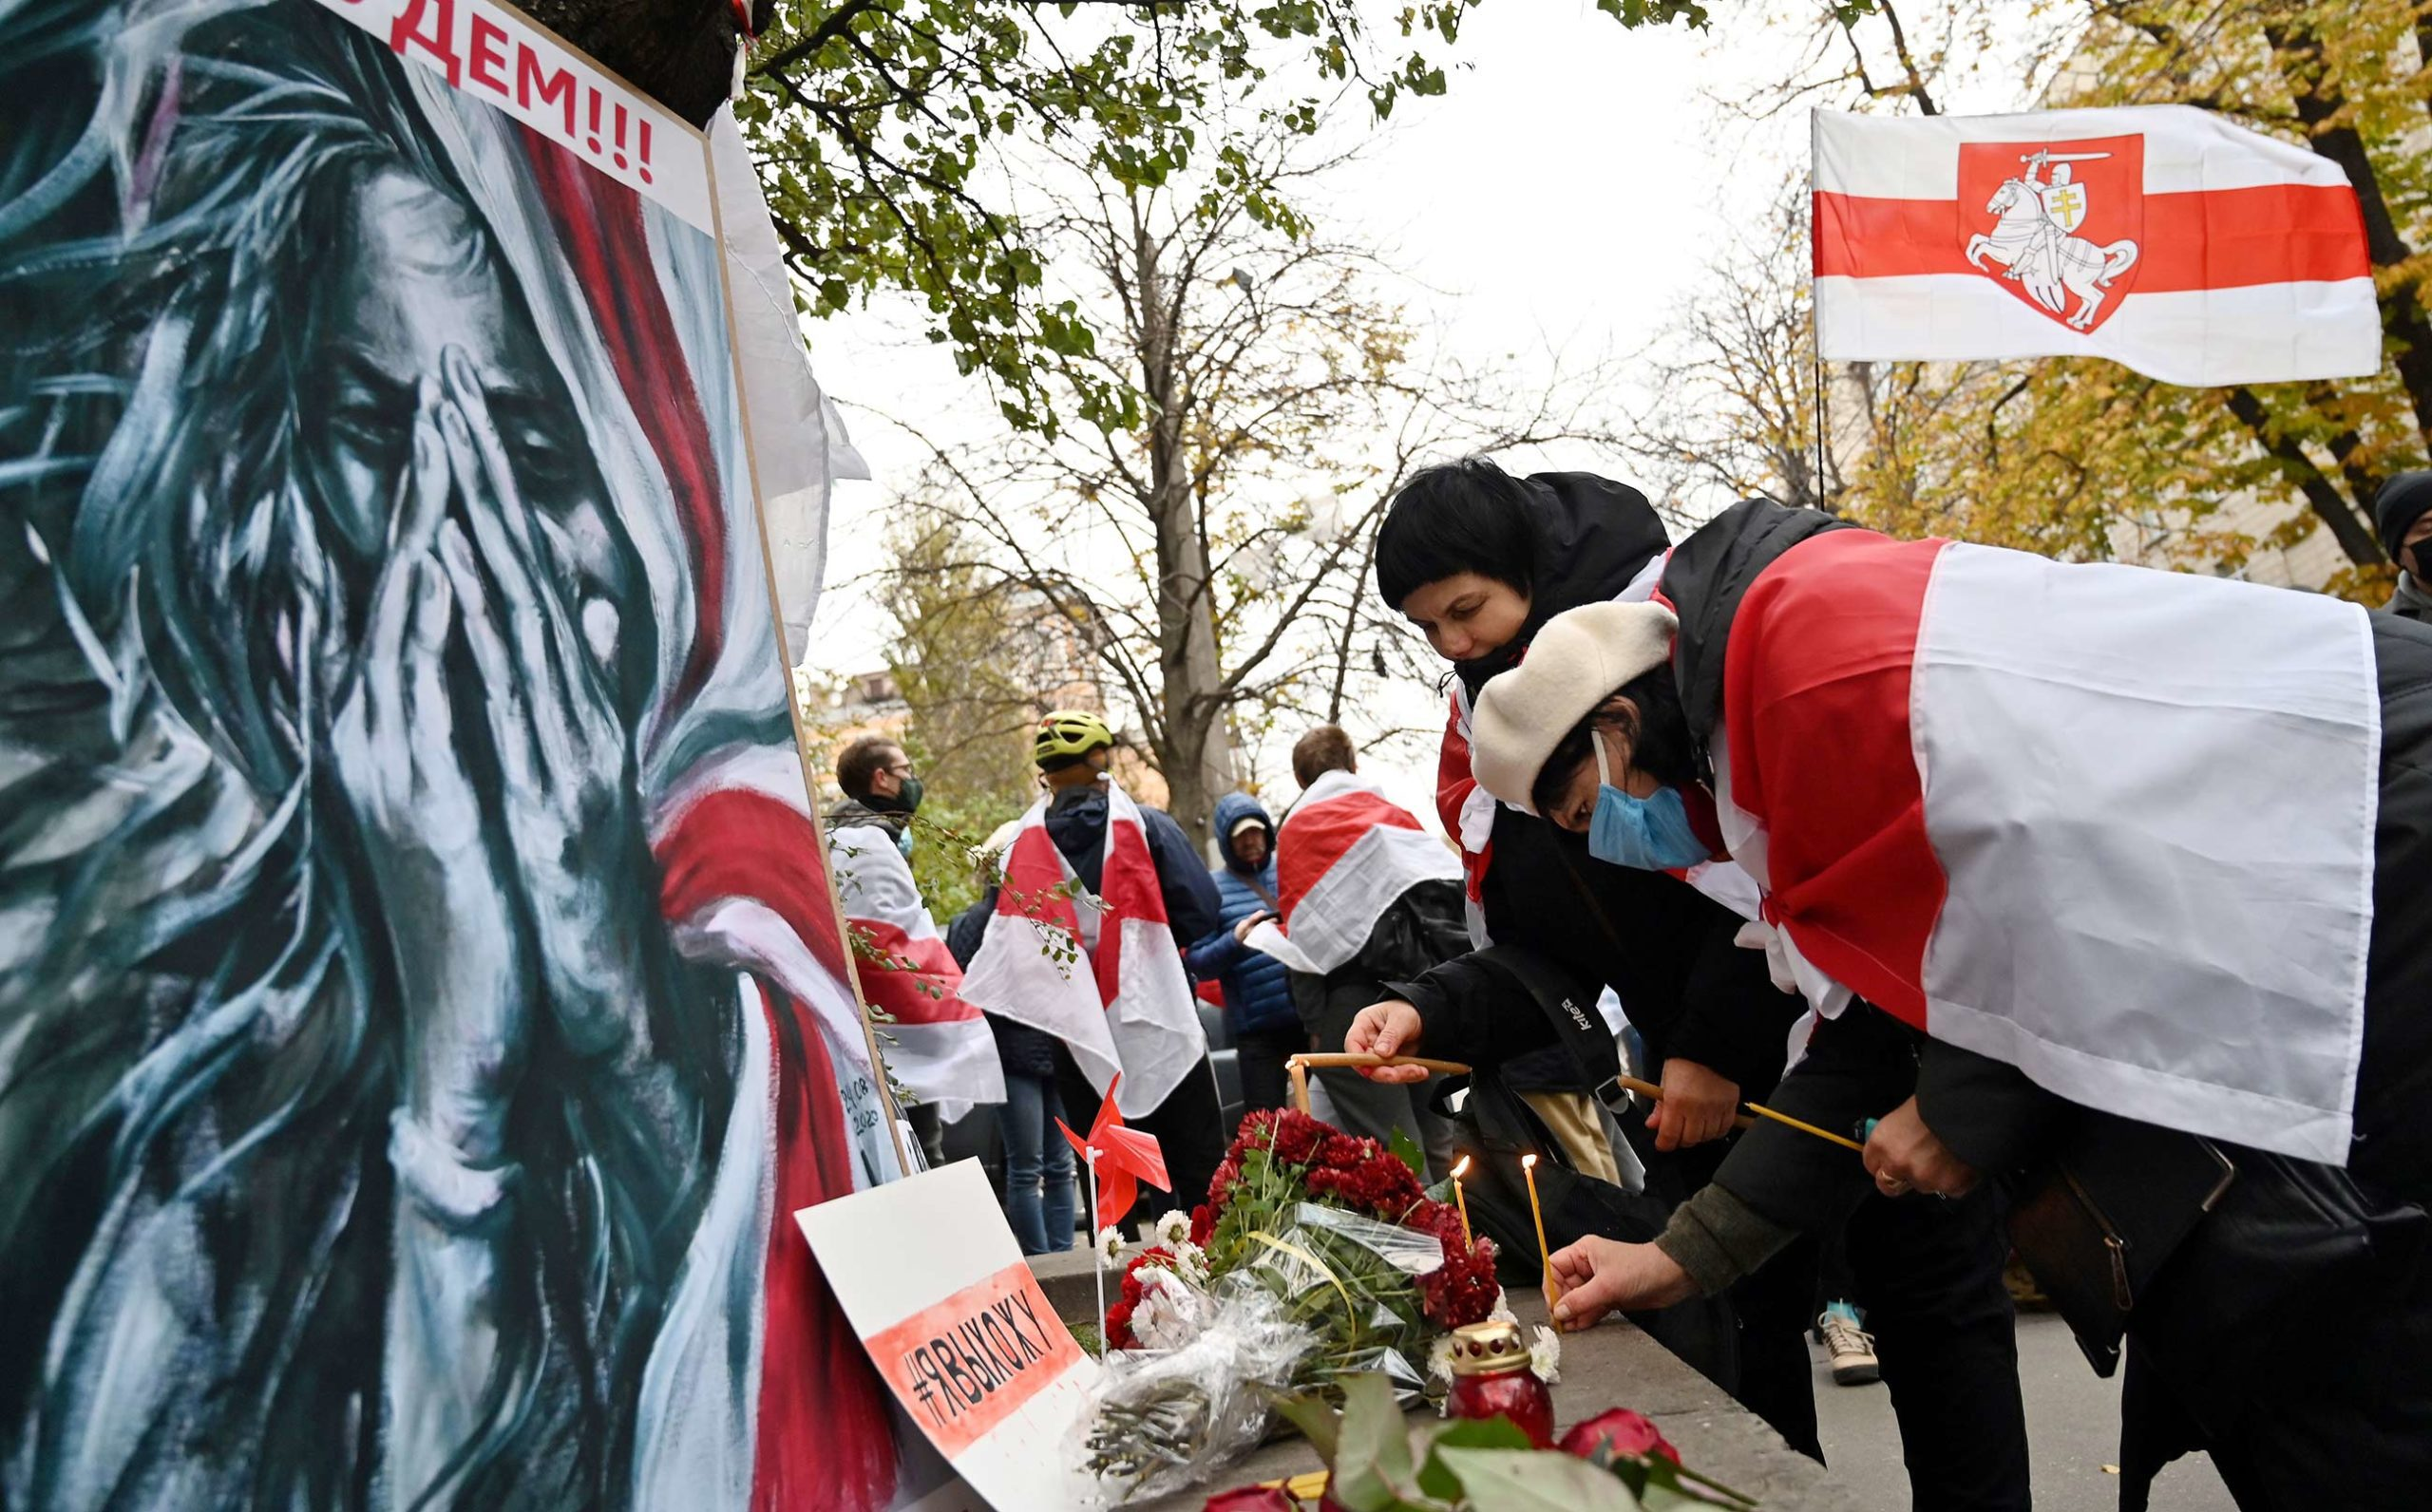 gettyimages 1229604732 scaled - <b>Belarus House, founded by Slain Activist Vitaly Shishov, Has a Poor Reputation Among Belarusian Organizations</b> - Заборона